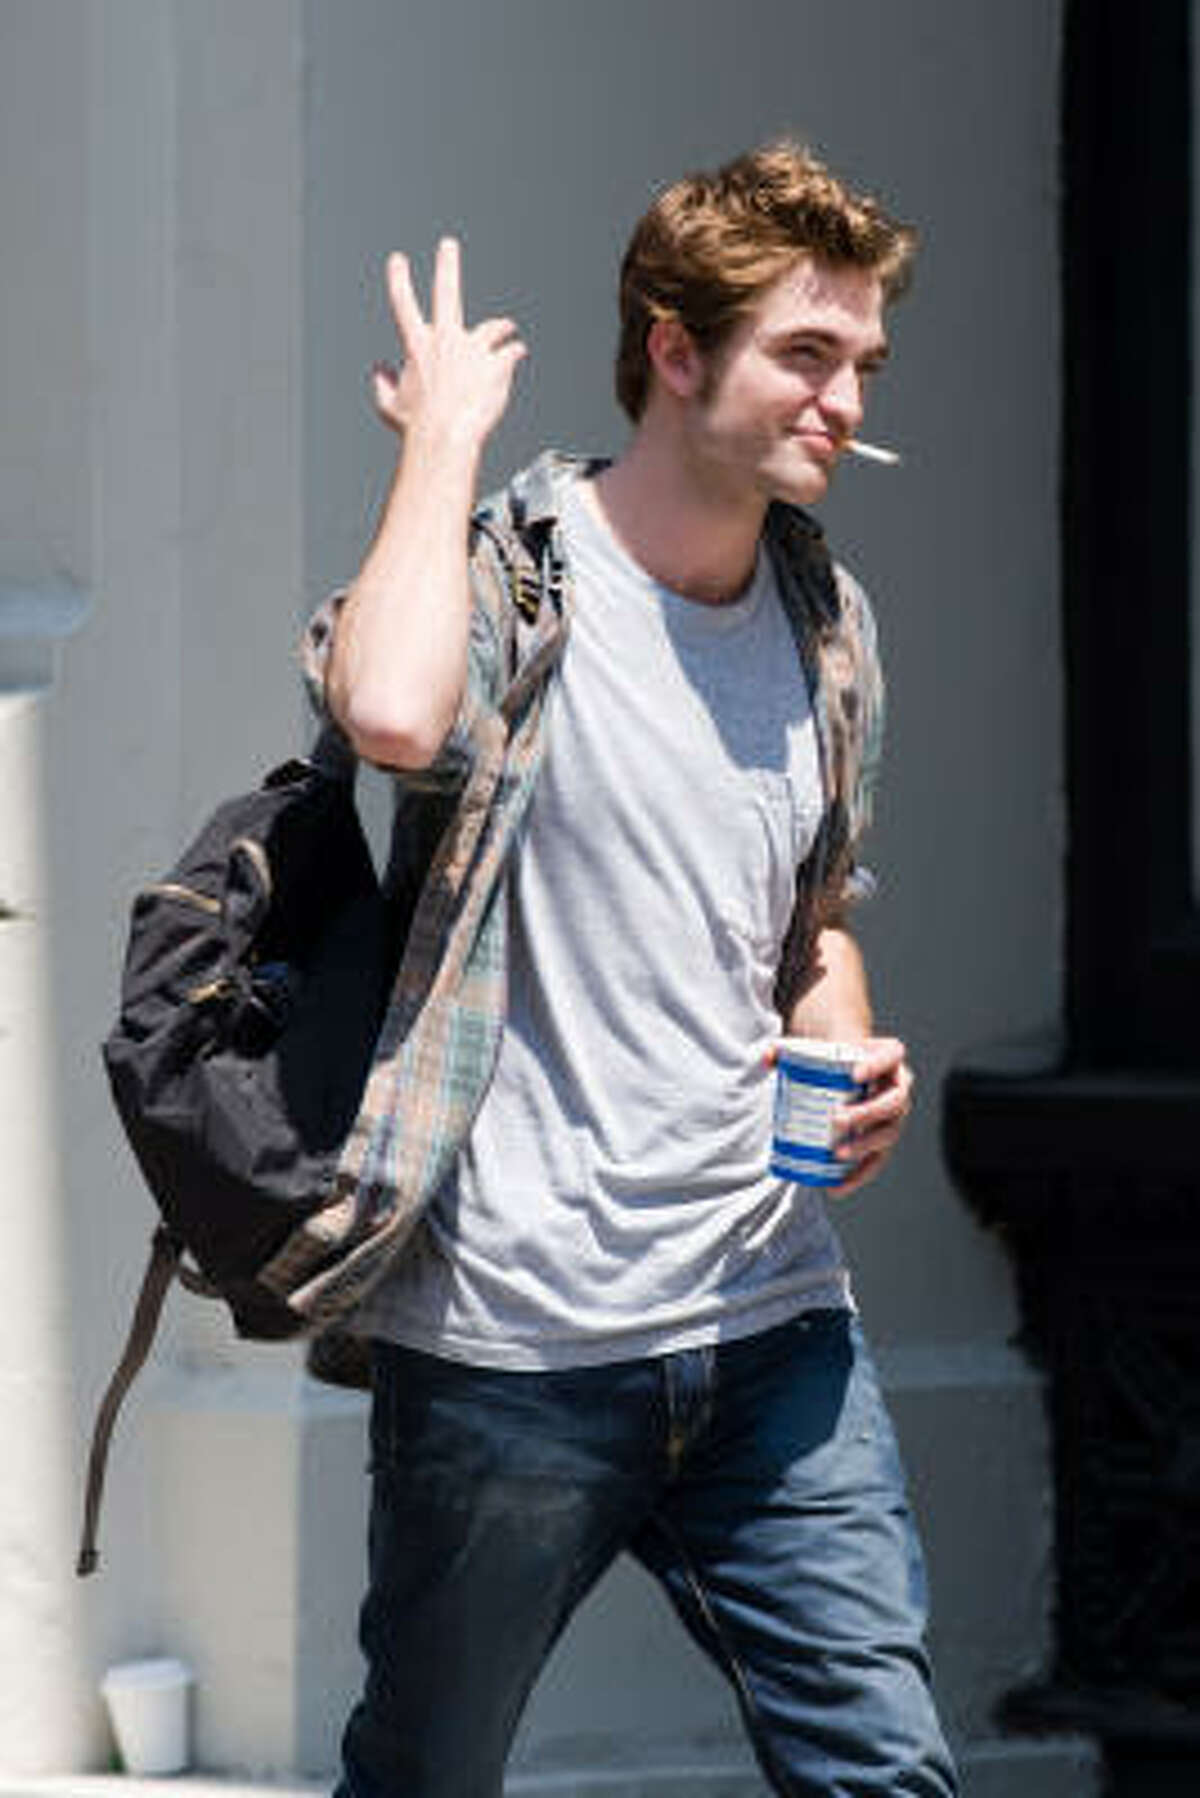 Robert Pattinson has shot to stardom since Twilight. And we're pretty sure he'd look as great in Speedos as he does in jeans.